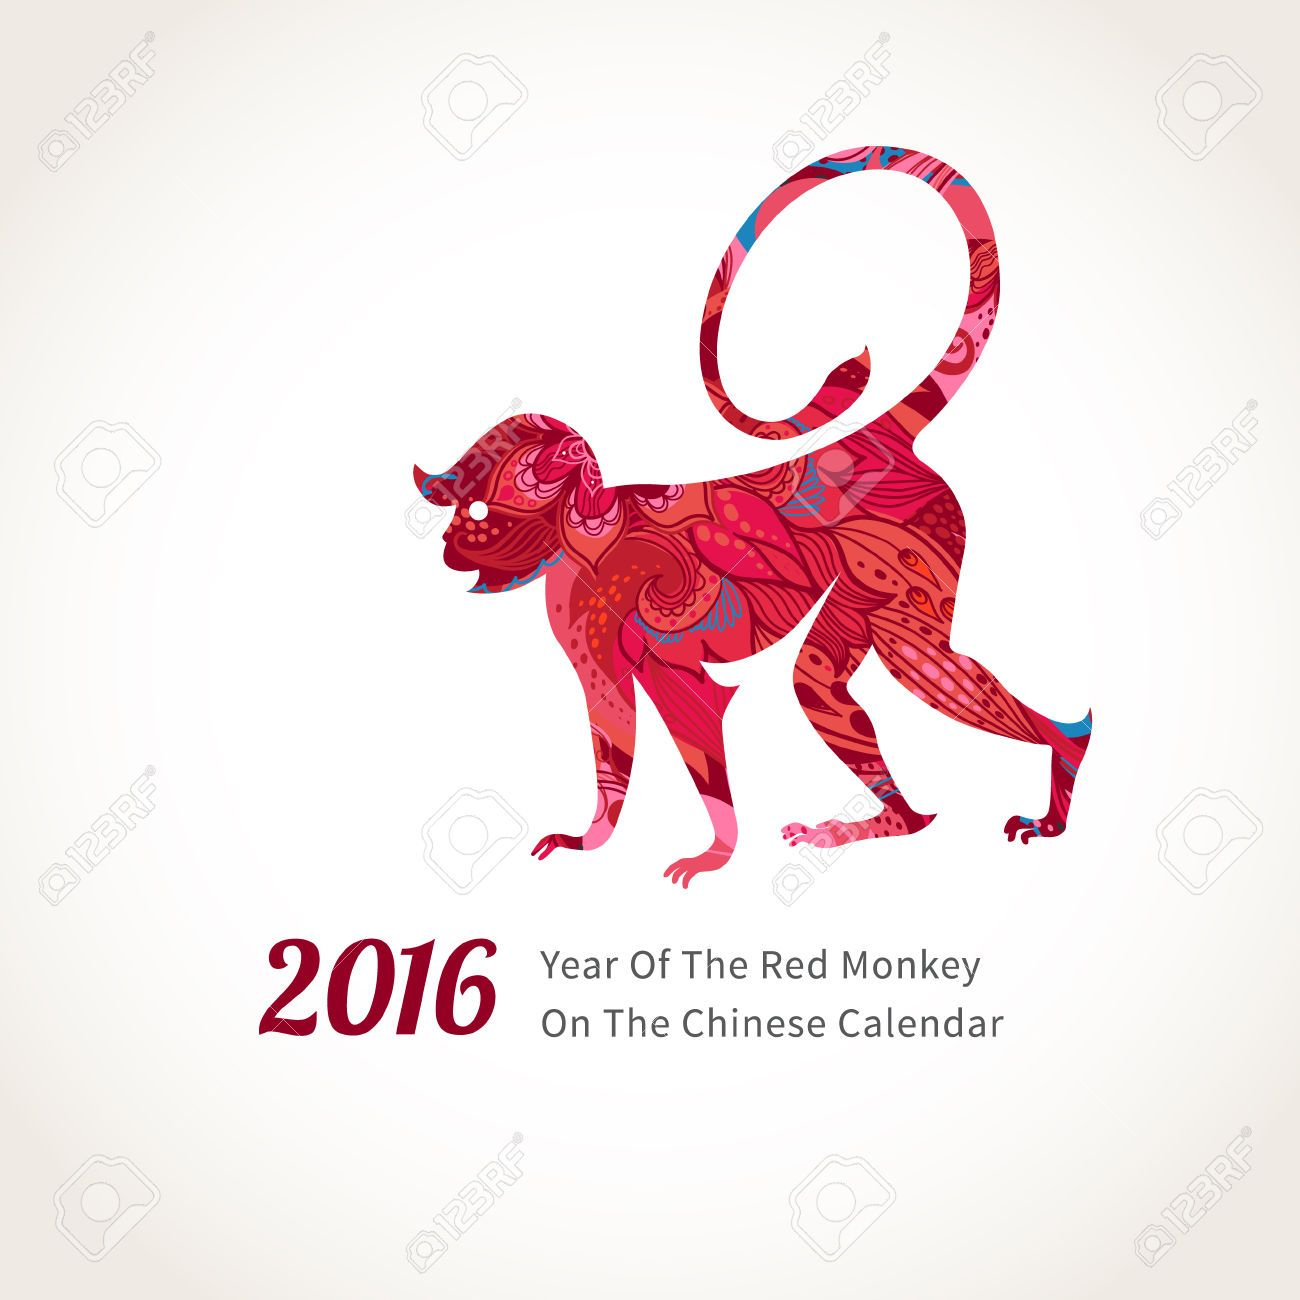 46469976 vector illustration of monkey symbol of 2016 on the chinese chinese new year monkey images stock pictures royalty free chinese new year monkey photos and stock photography buycottarizona Gallery